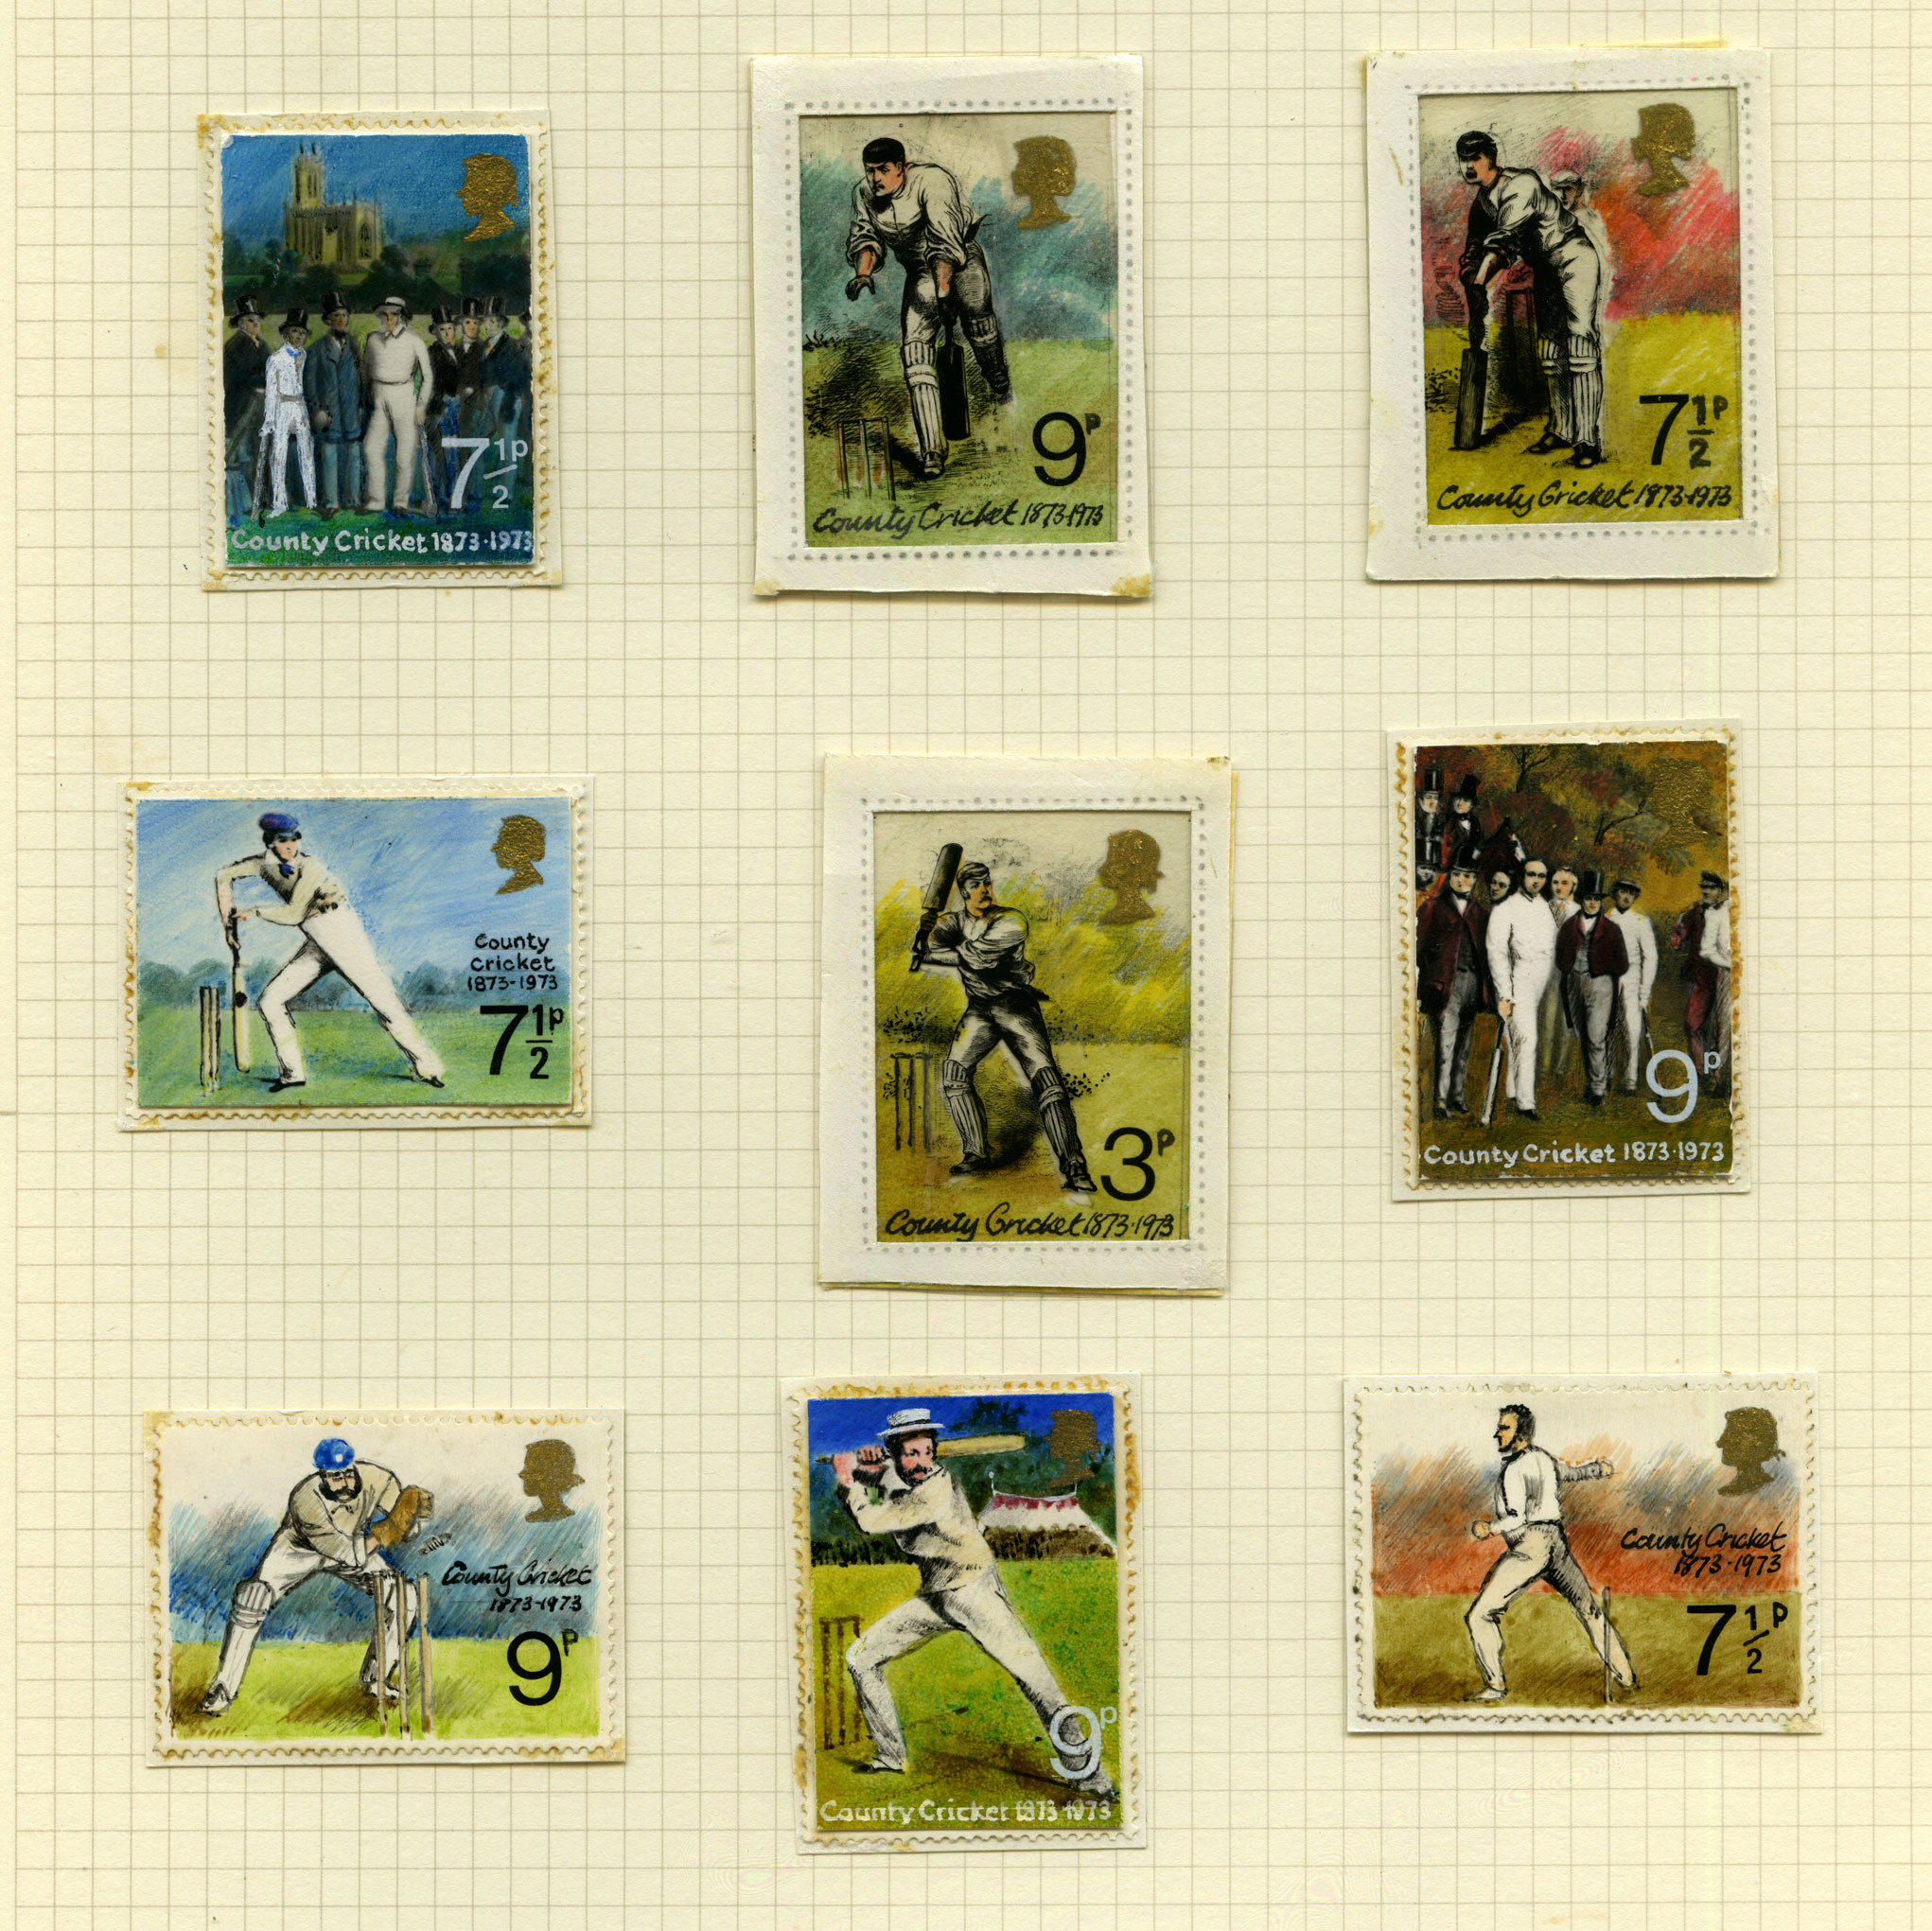 Nine stamp size colour illustrations of cricketers in different positions.